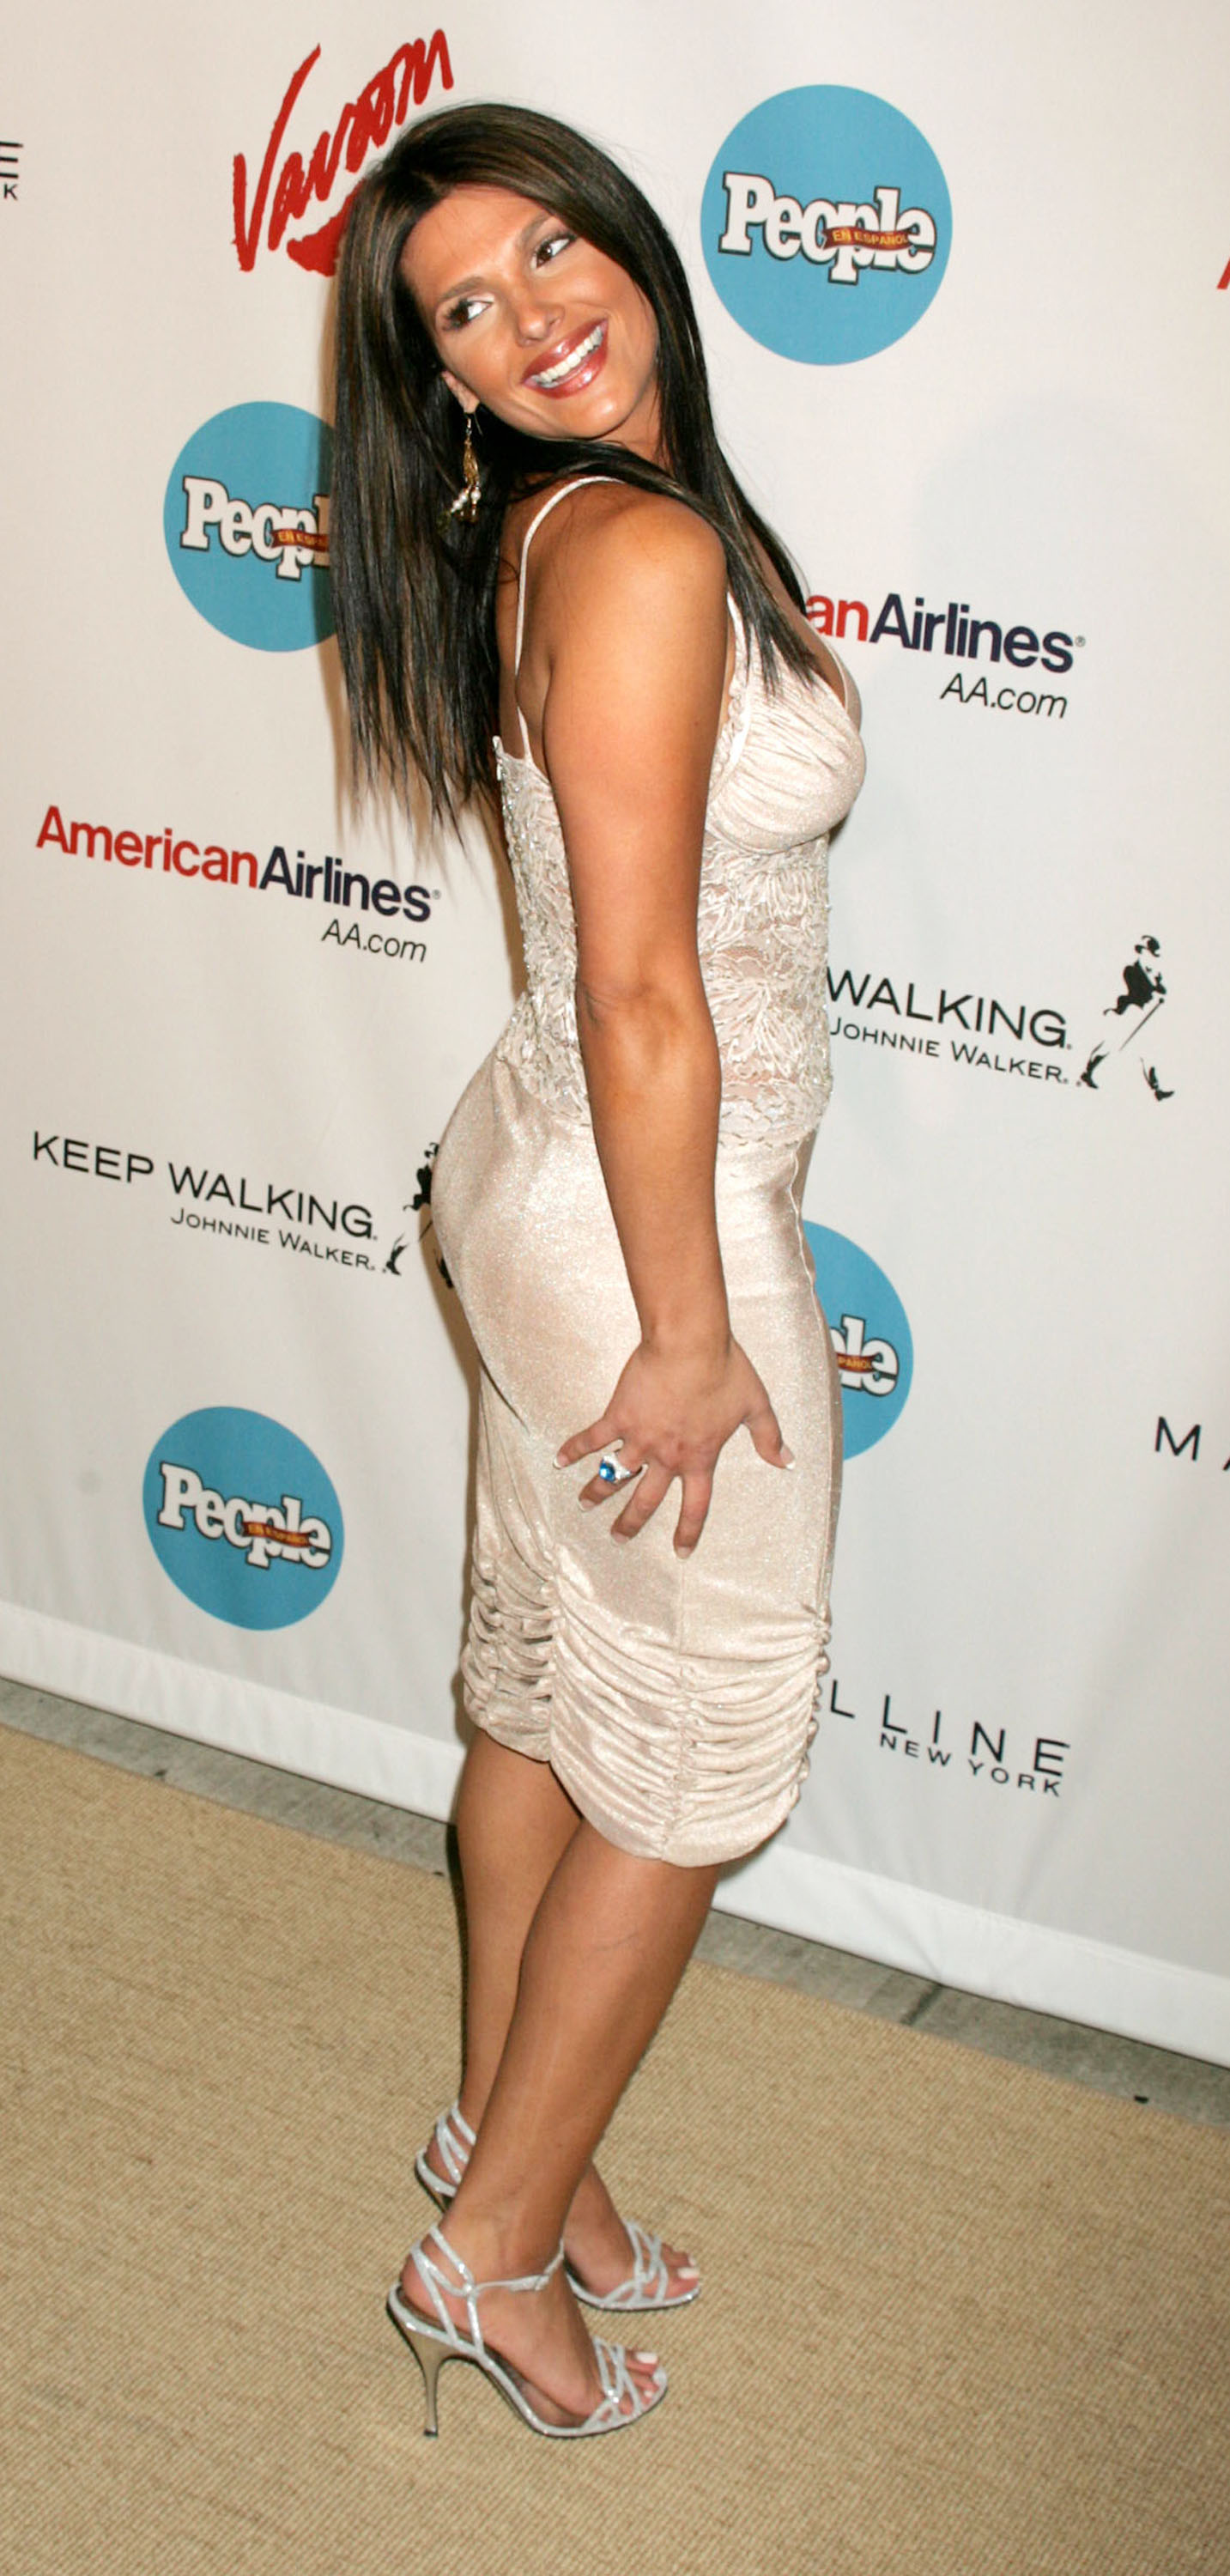 barbara bermudo picture colection wallpaper star beauty